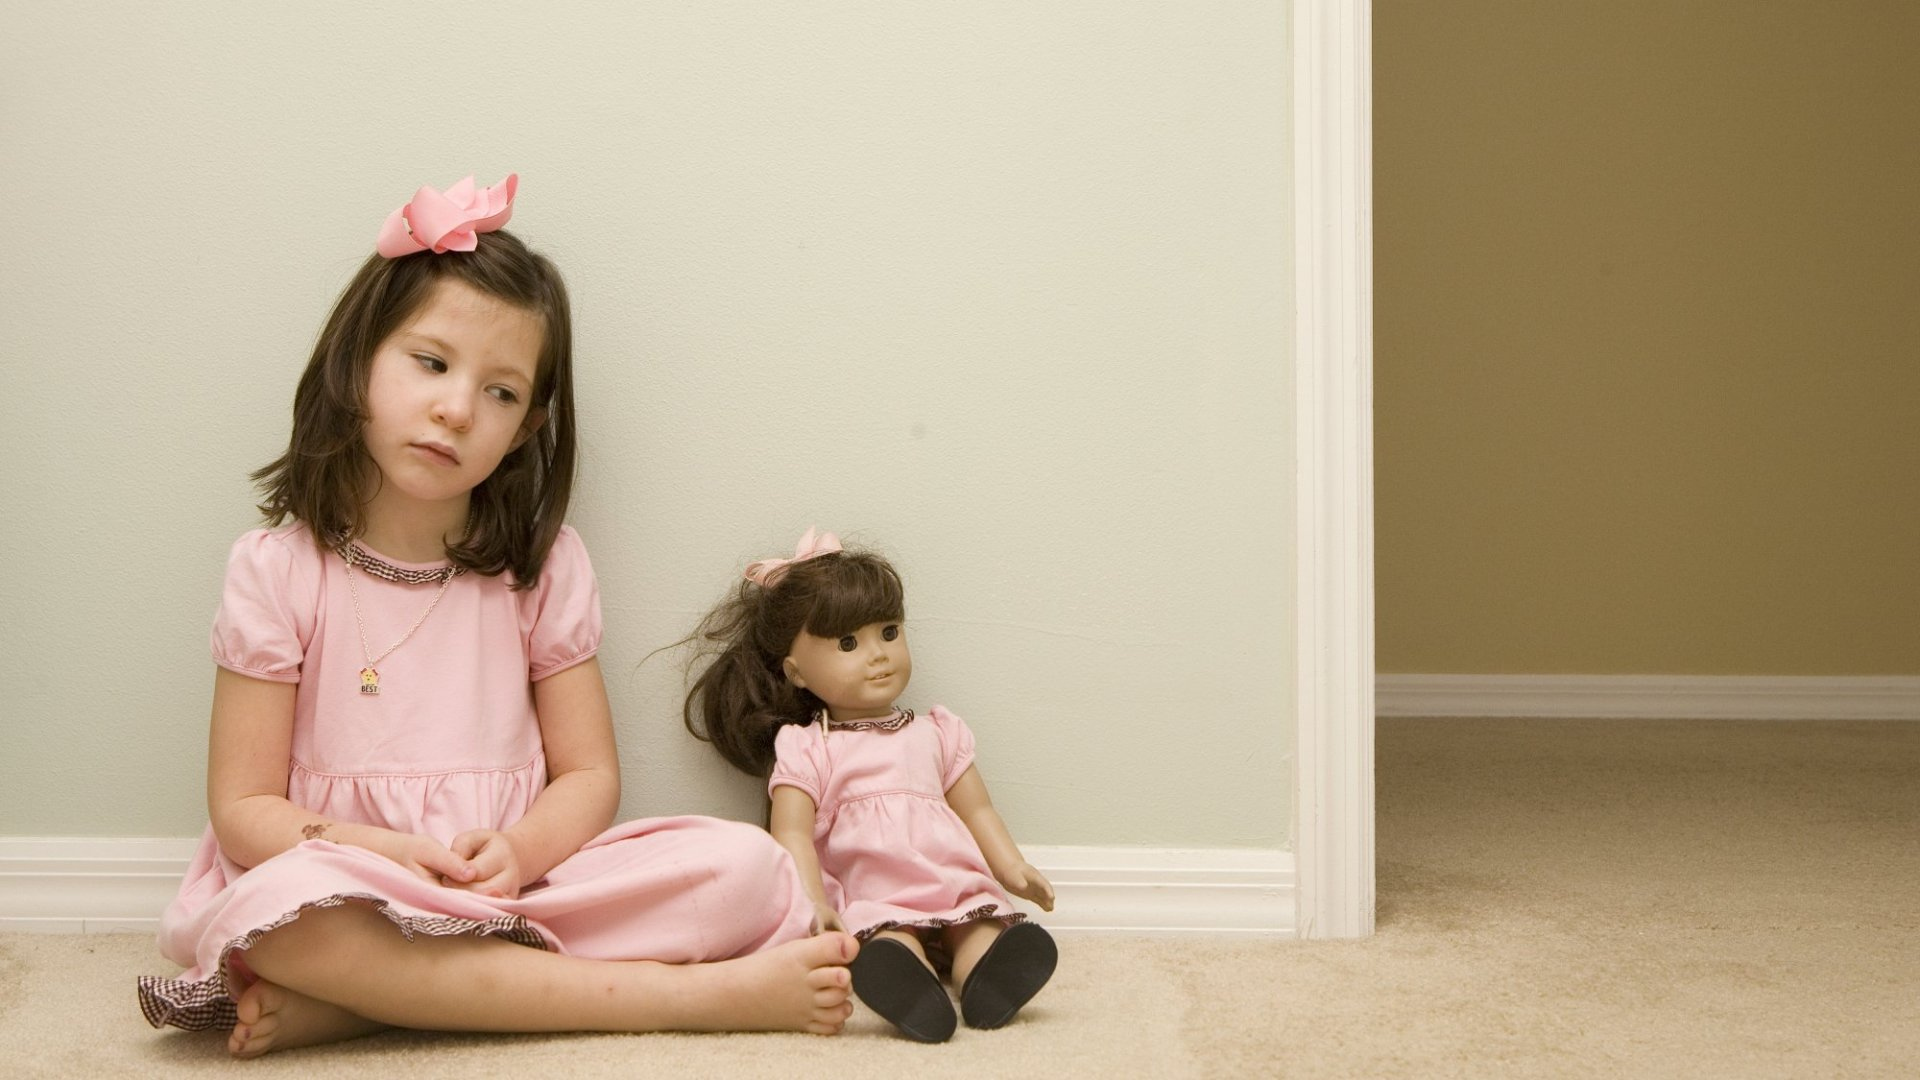 What Entrepreneurs Can Learn From the (Creepy) Doll Industry